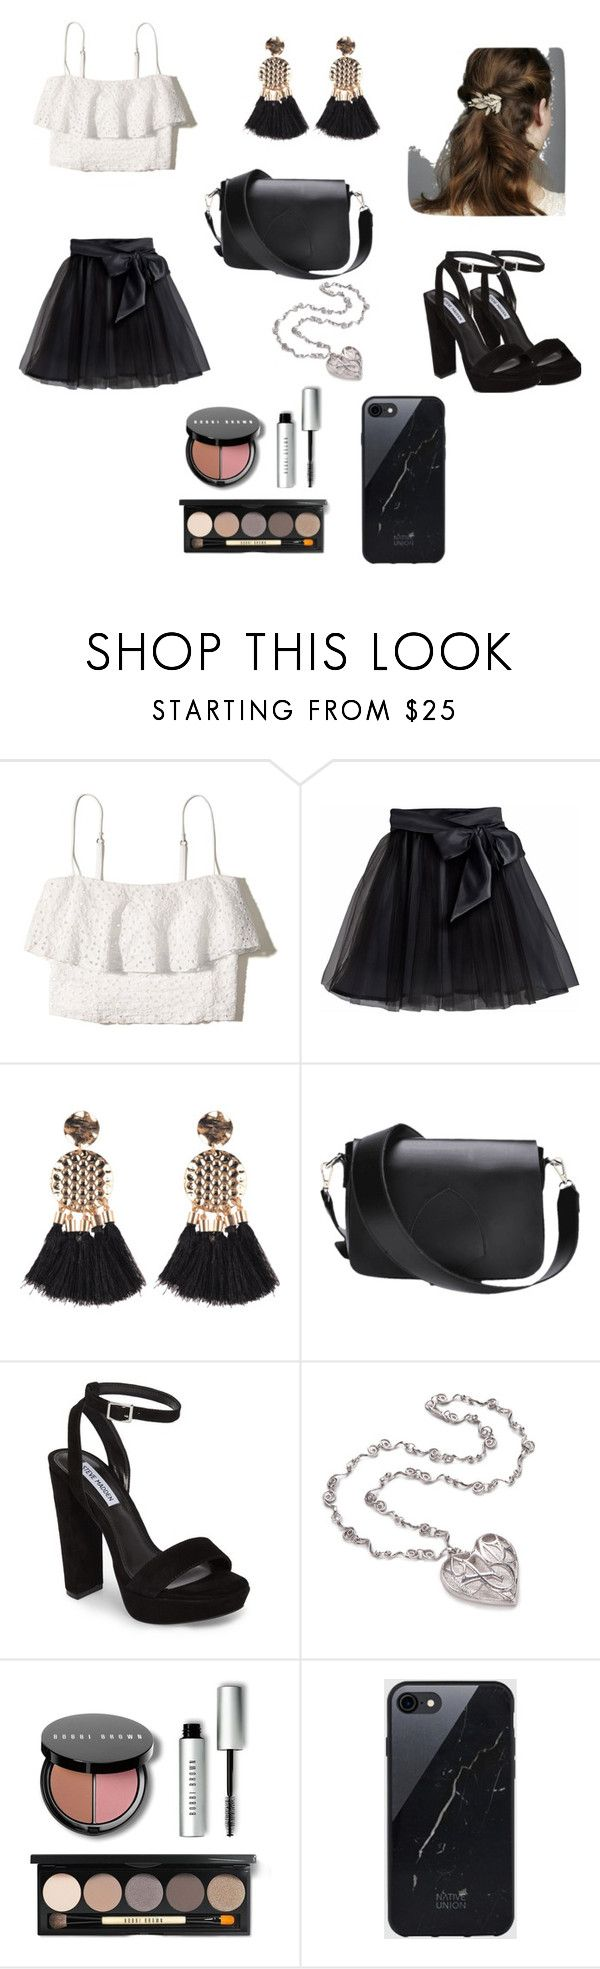 """Untitled #48"" by palaghia-teona on Polyvore featuring Hollister Co., Little Wardrobe London, Steve Madden, Bobbi Brown Cosmetics and Sefton"